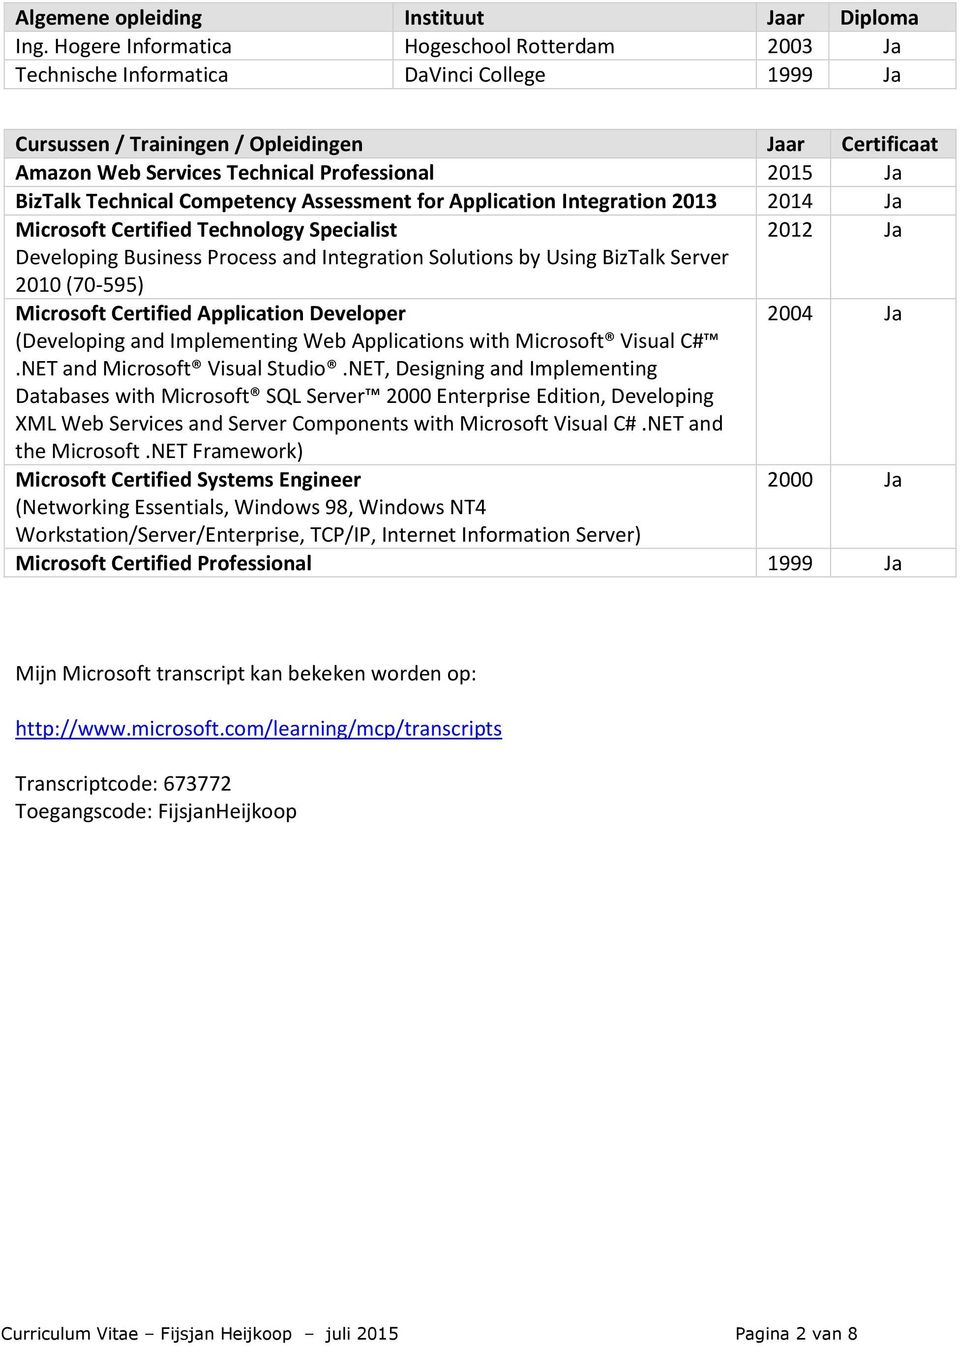 BizTalk Technical Competency Assessment for Application Integration 2013 2014 Ja Microsoft Certified Technology Specialist 2012 Ja Developing Business Process and Integration Solutions by Using